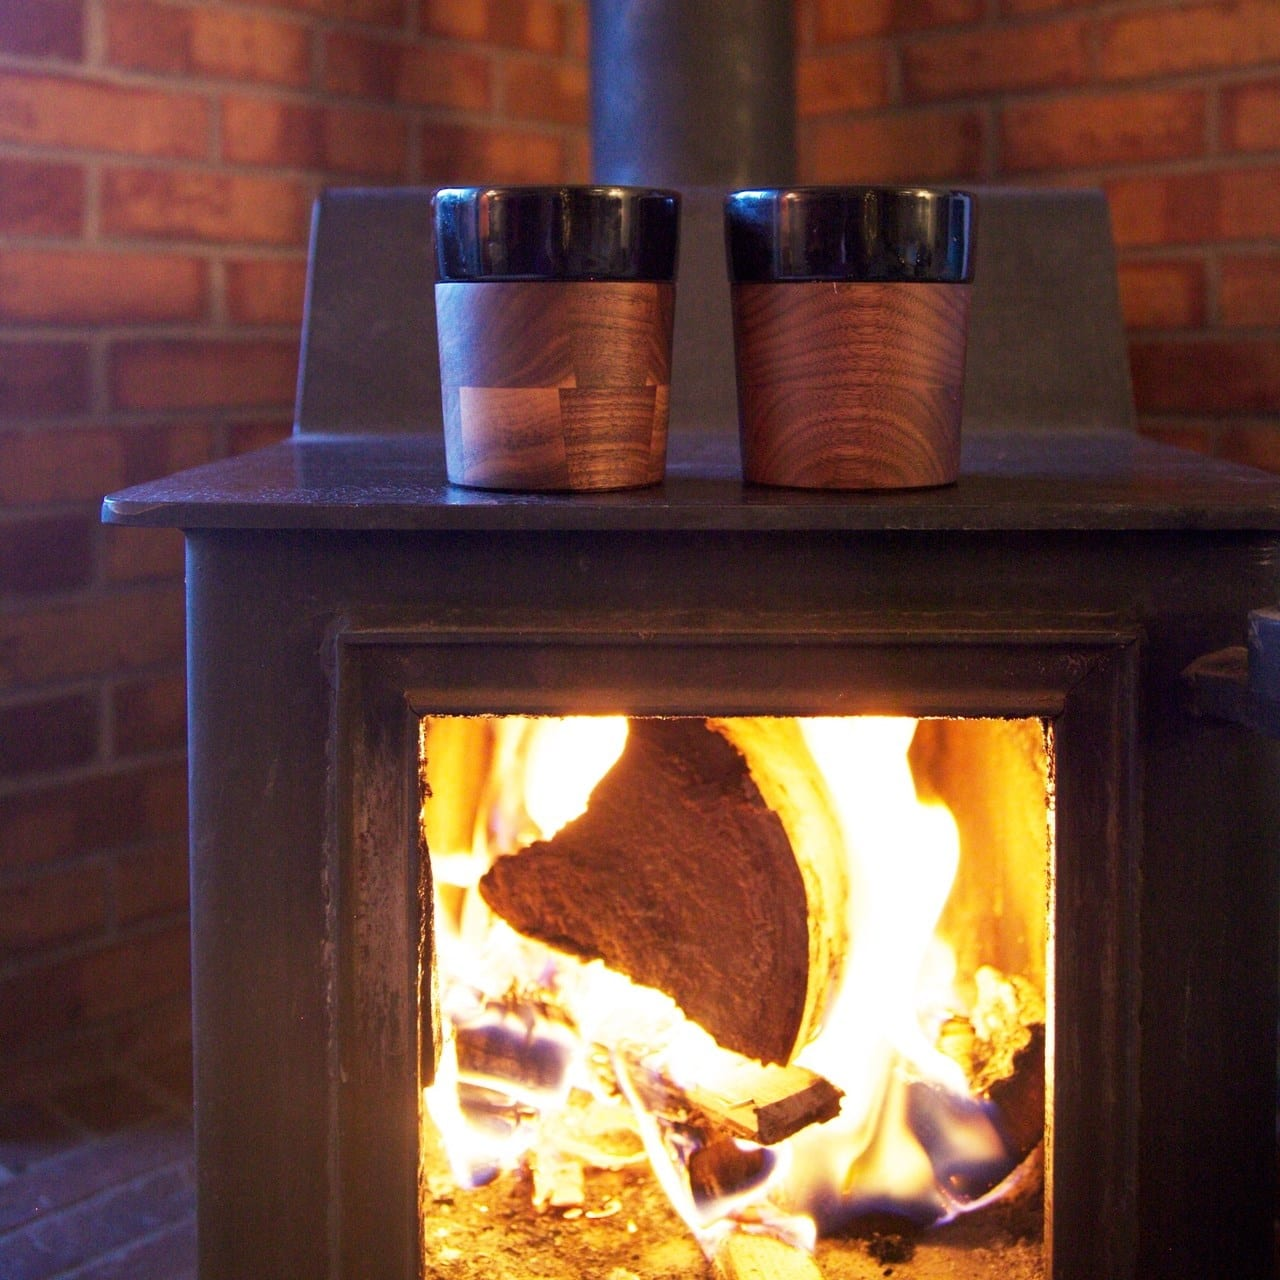 Image of two David Rasmussen wooden cups over a fireplace